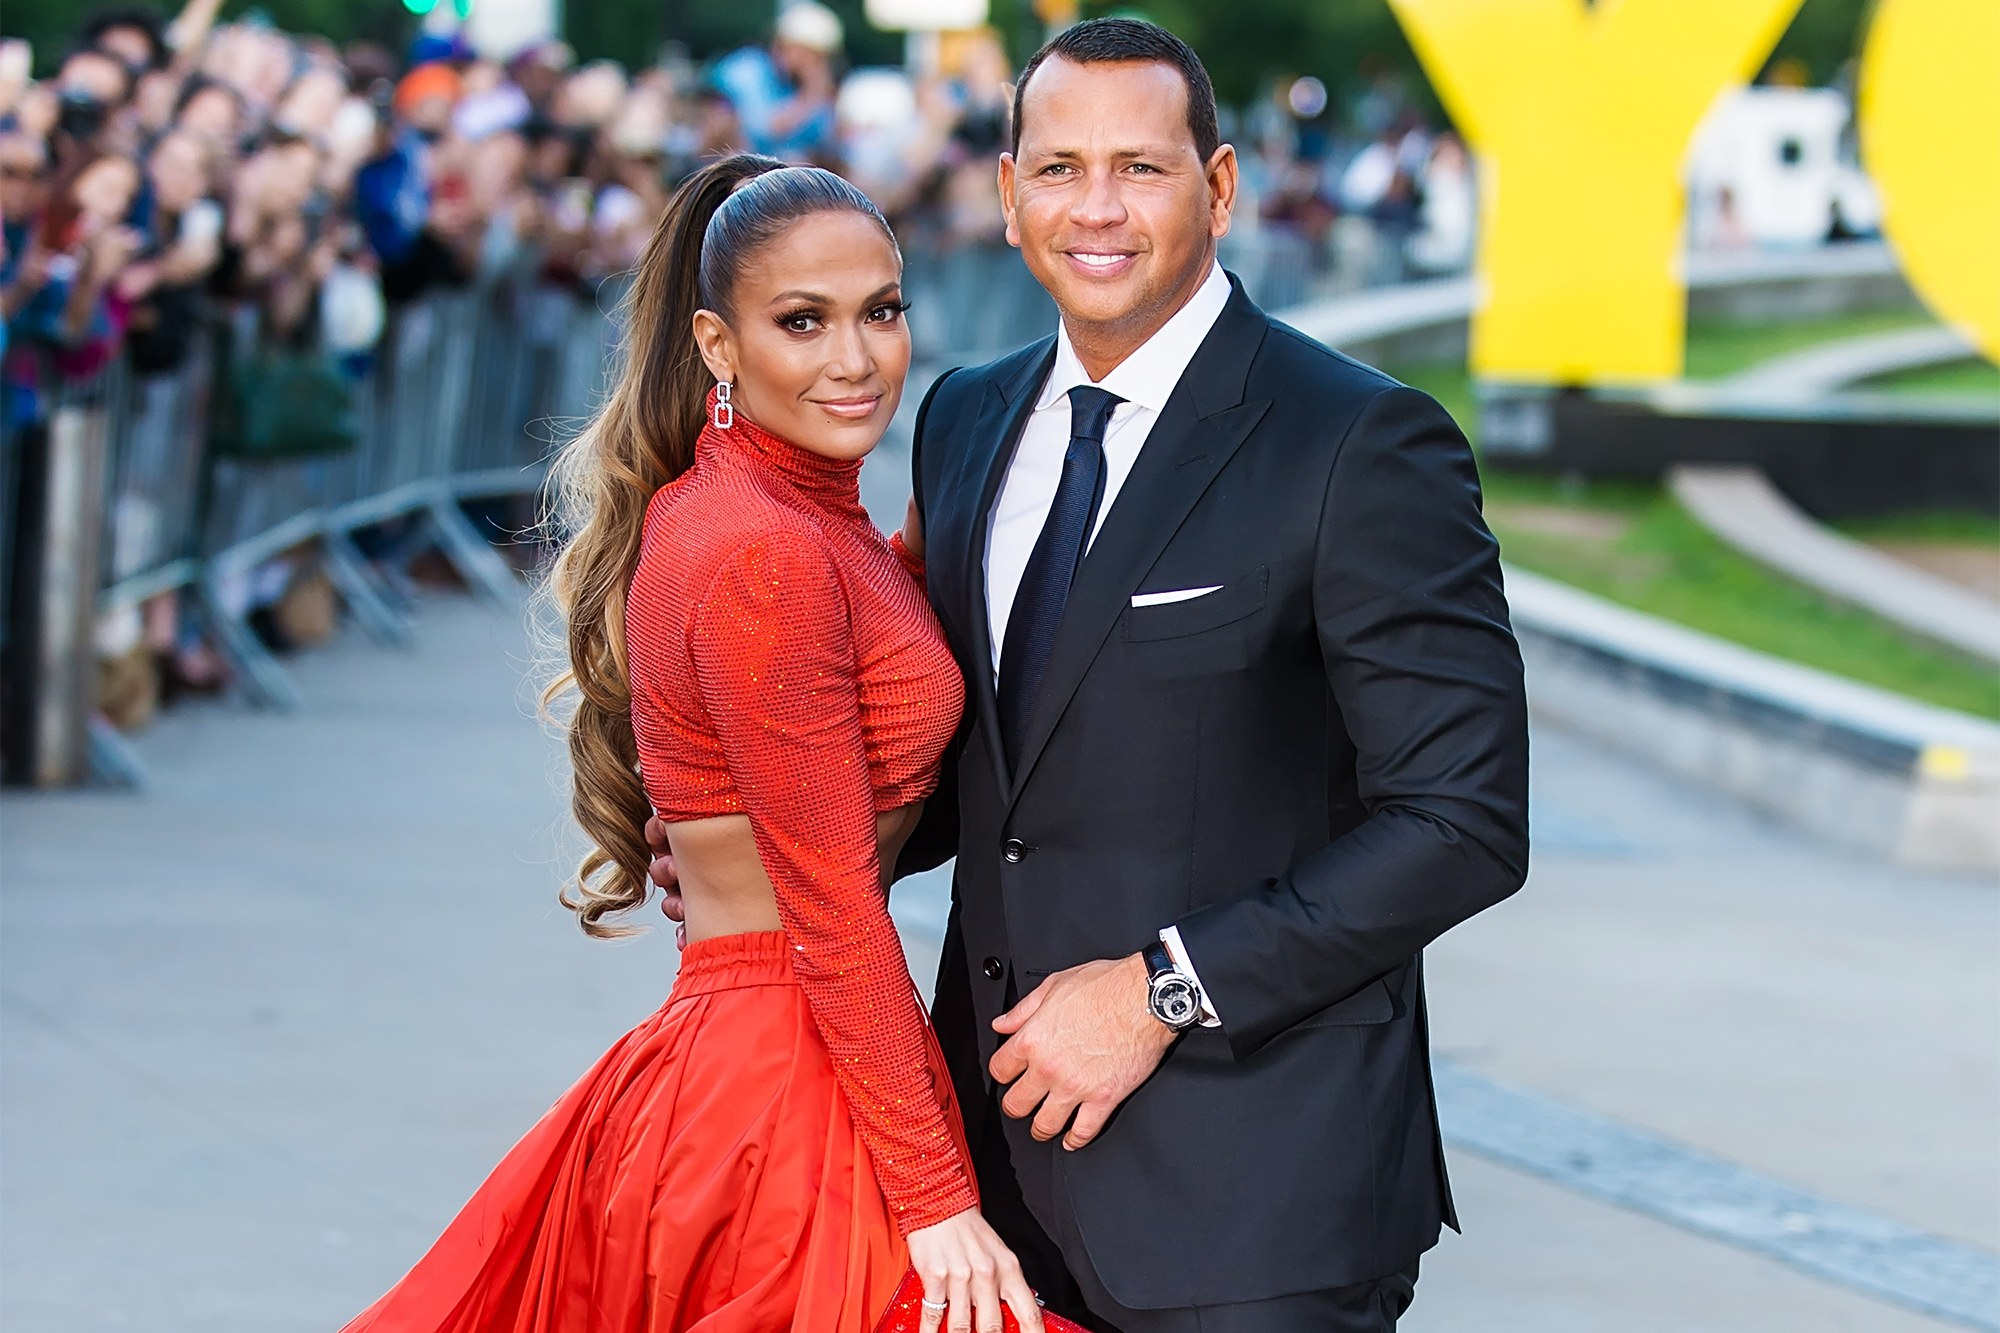 alex-rodriguez-reportedly-begging-jennifer-lopez-to-work-on-their-relationship-amid-split-reports